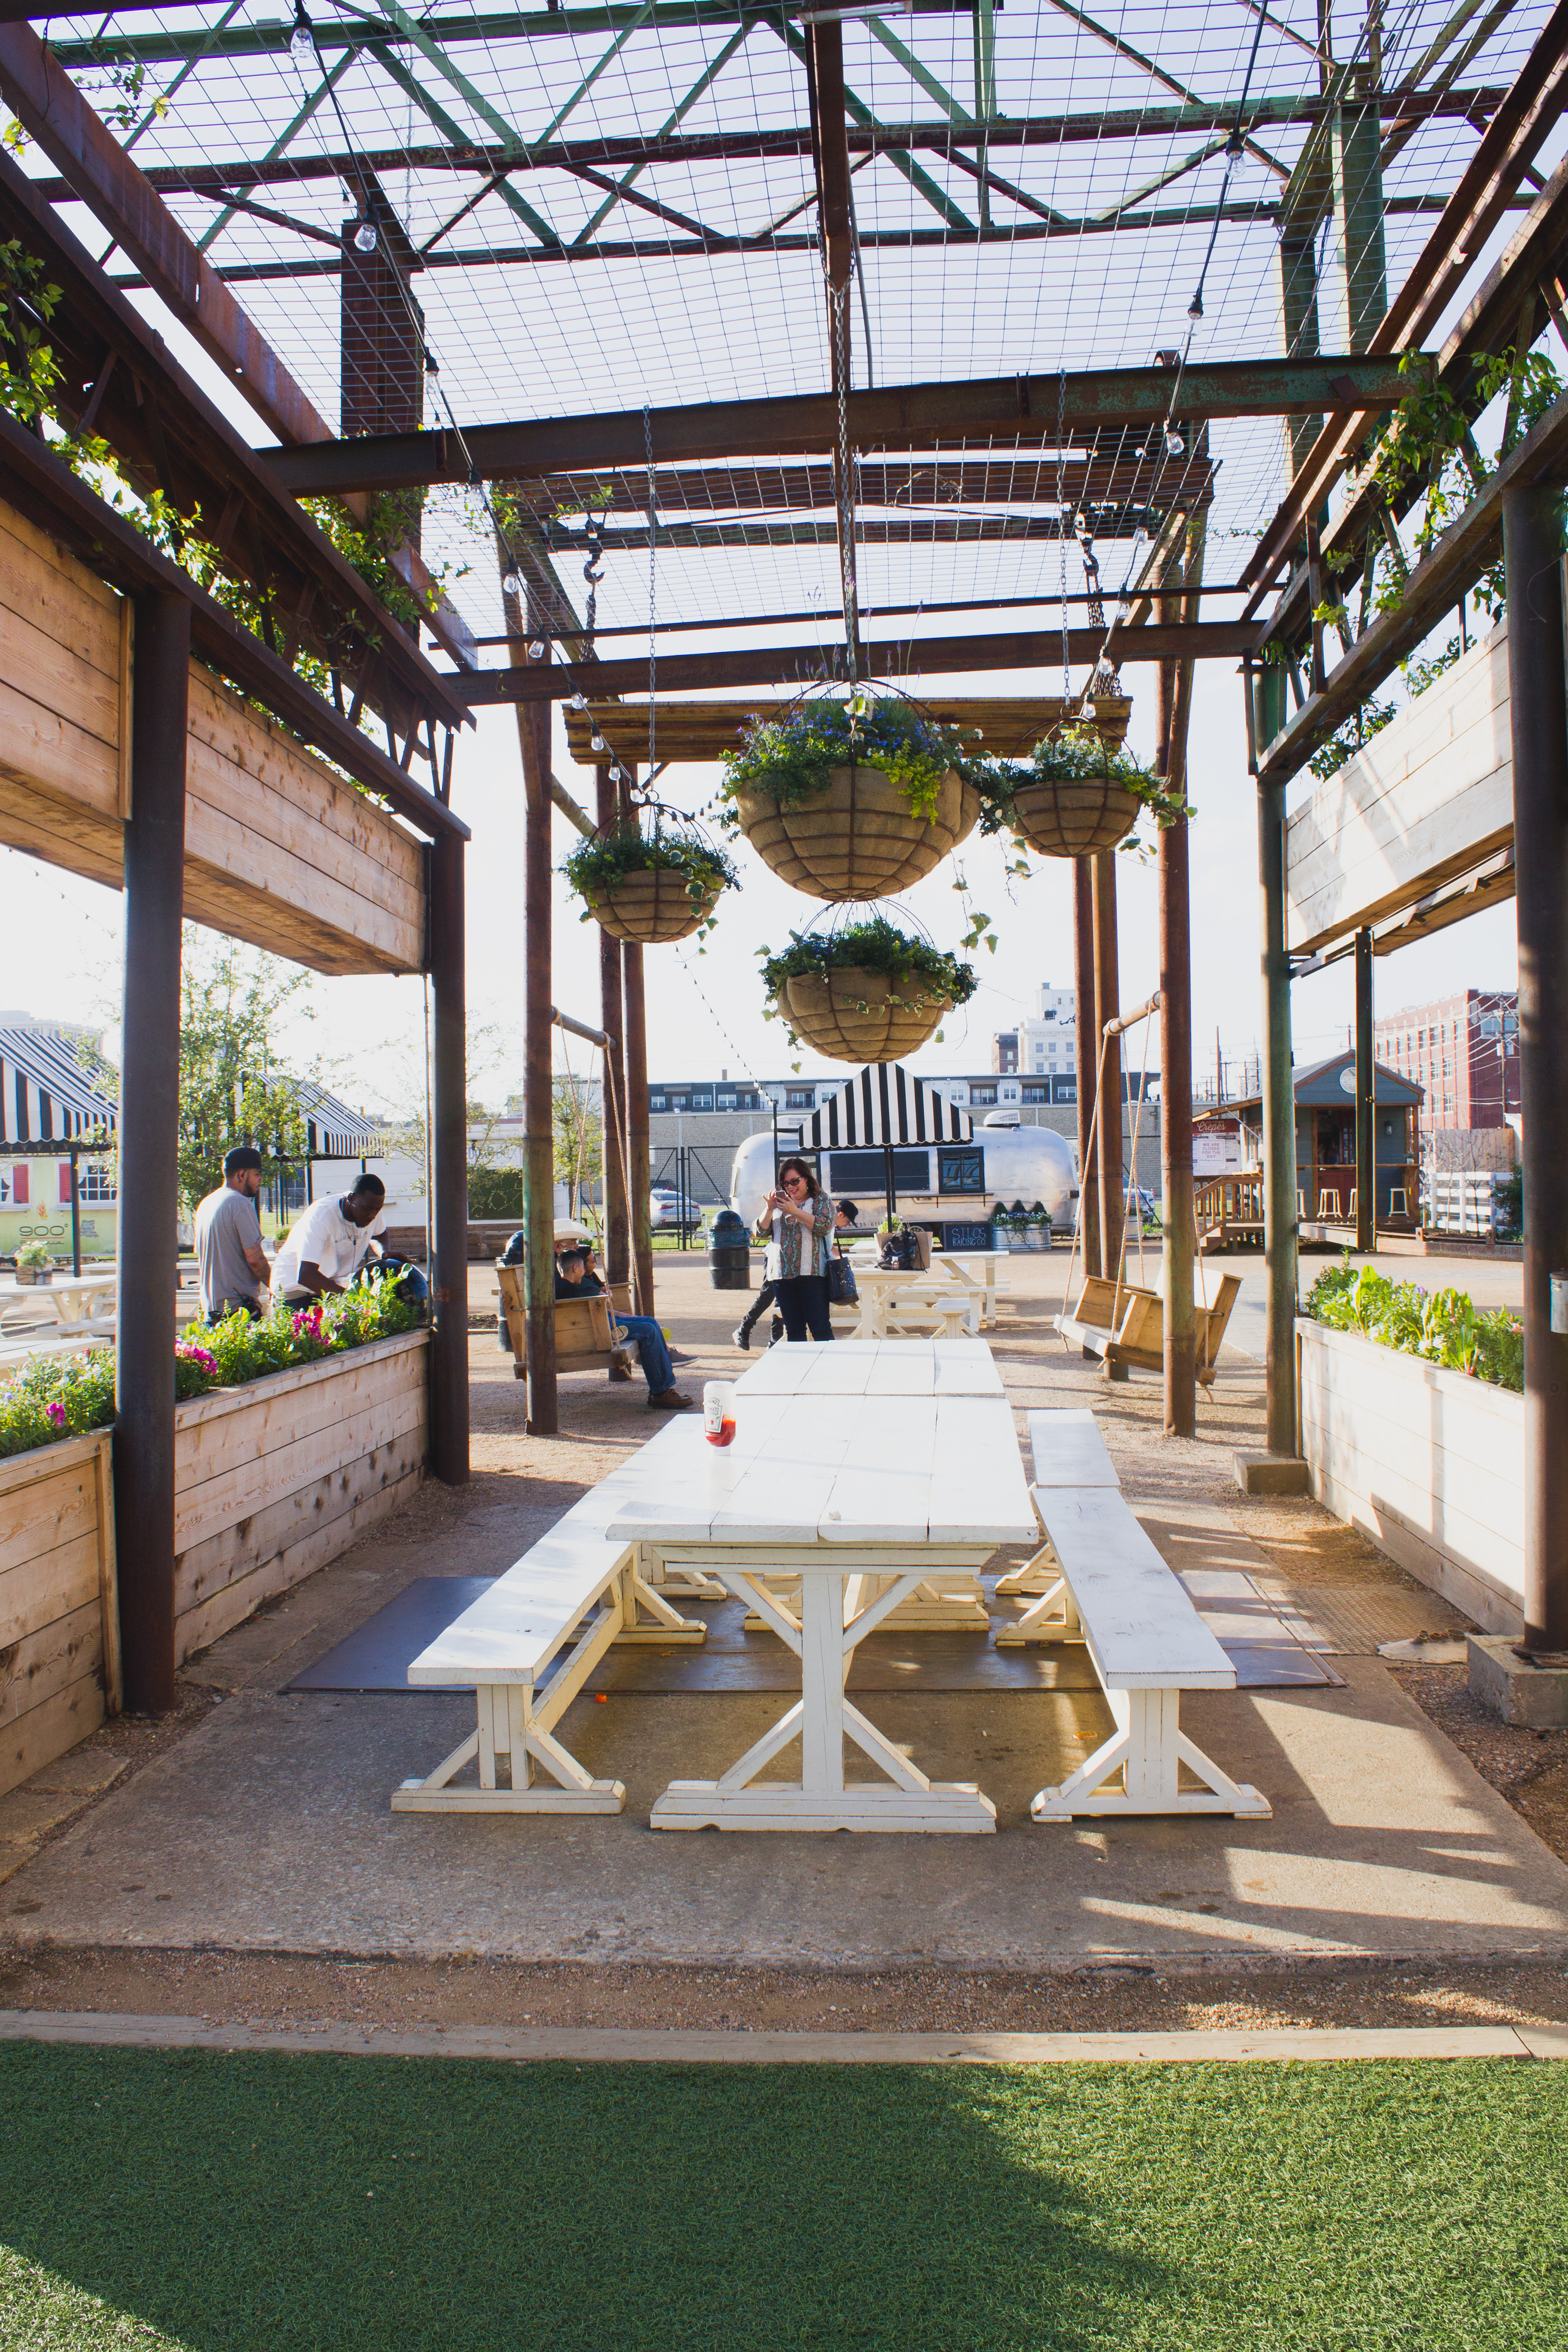 Tips for your visit to Magnolia Market at the Silos